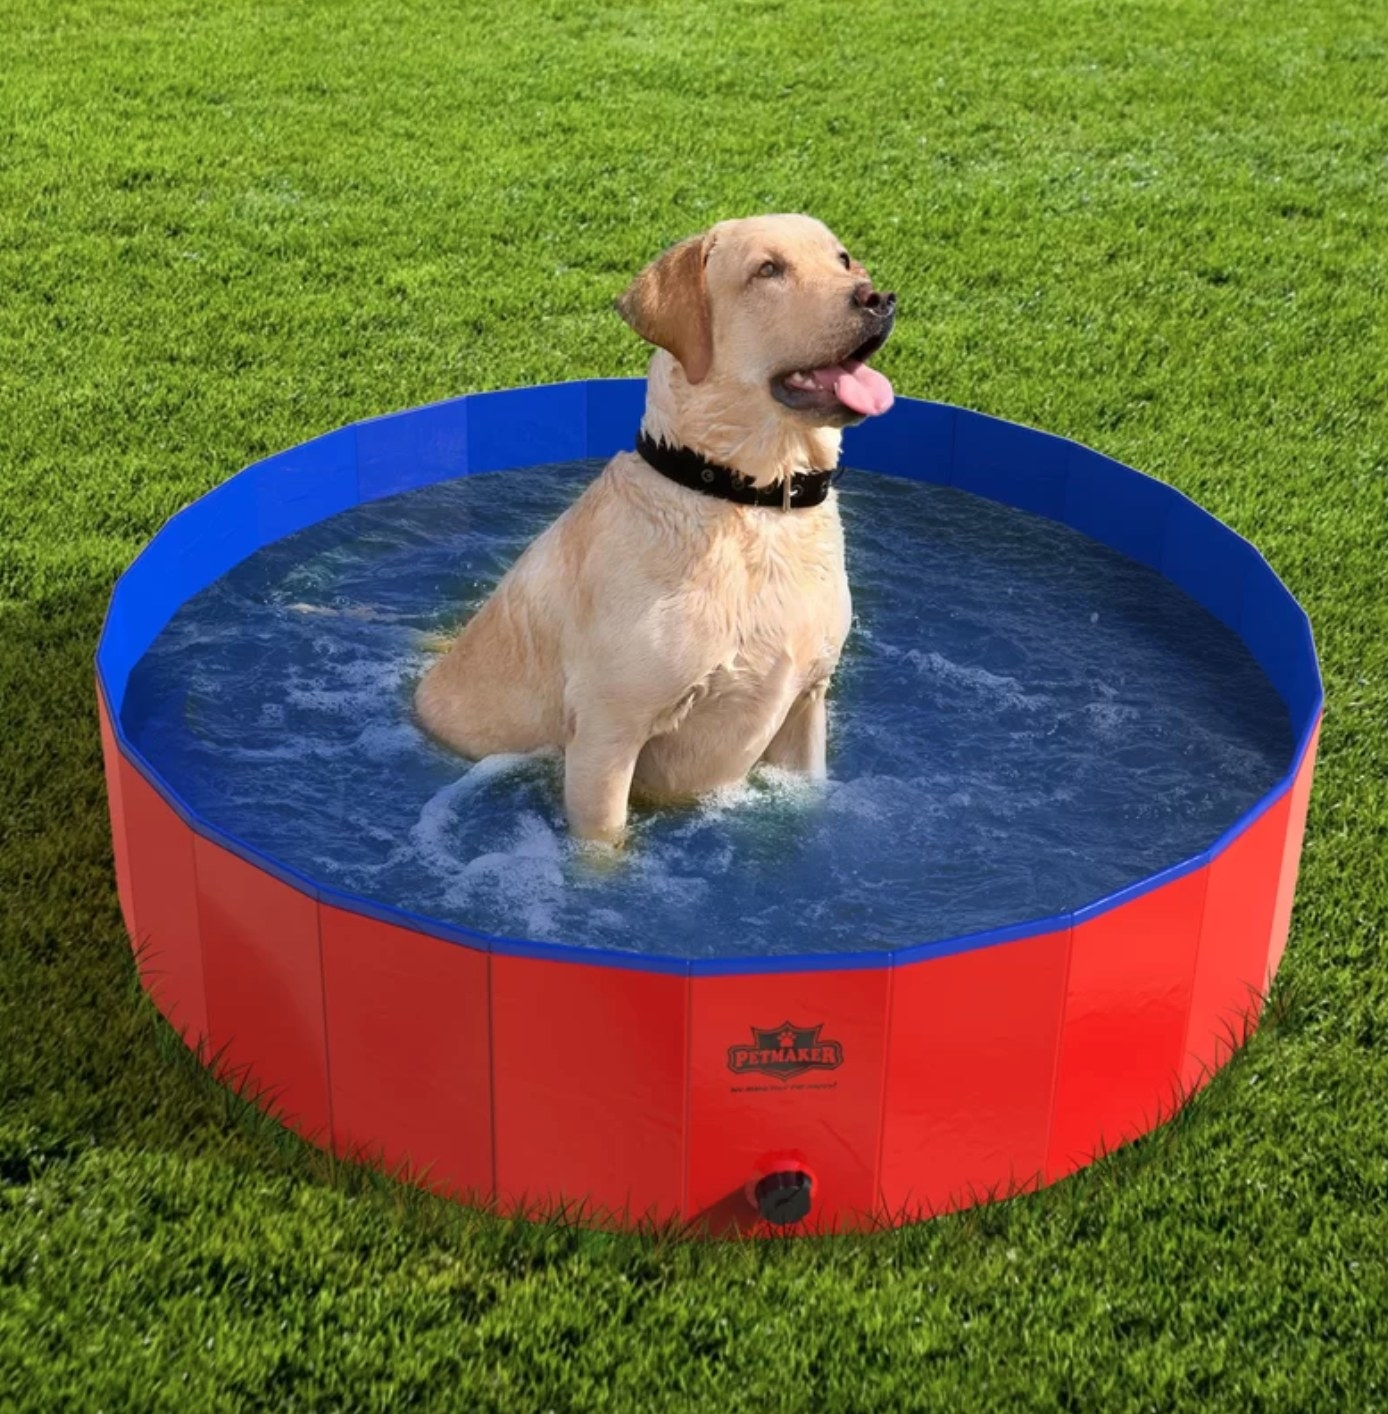 The pet pool and bathing tub